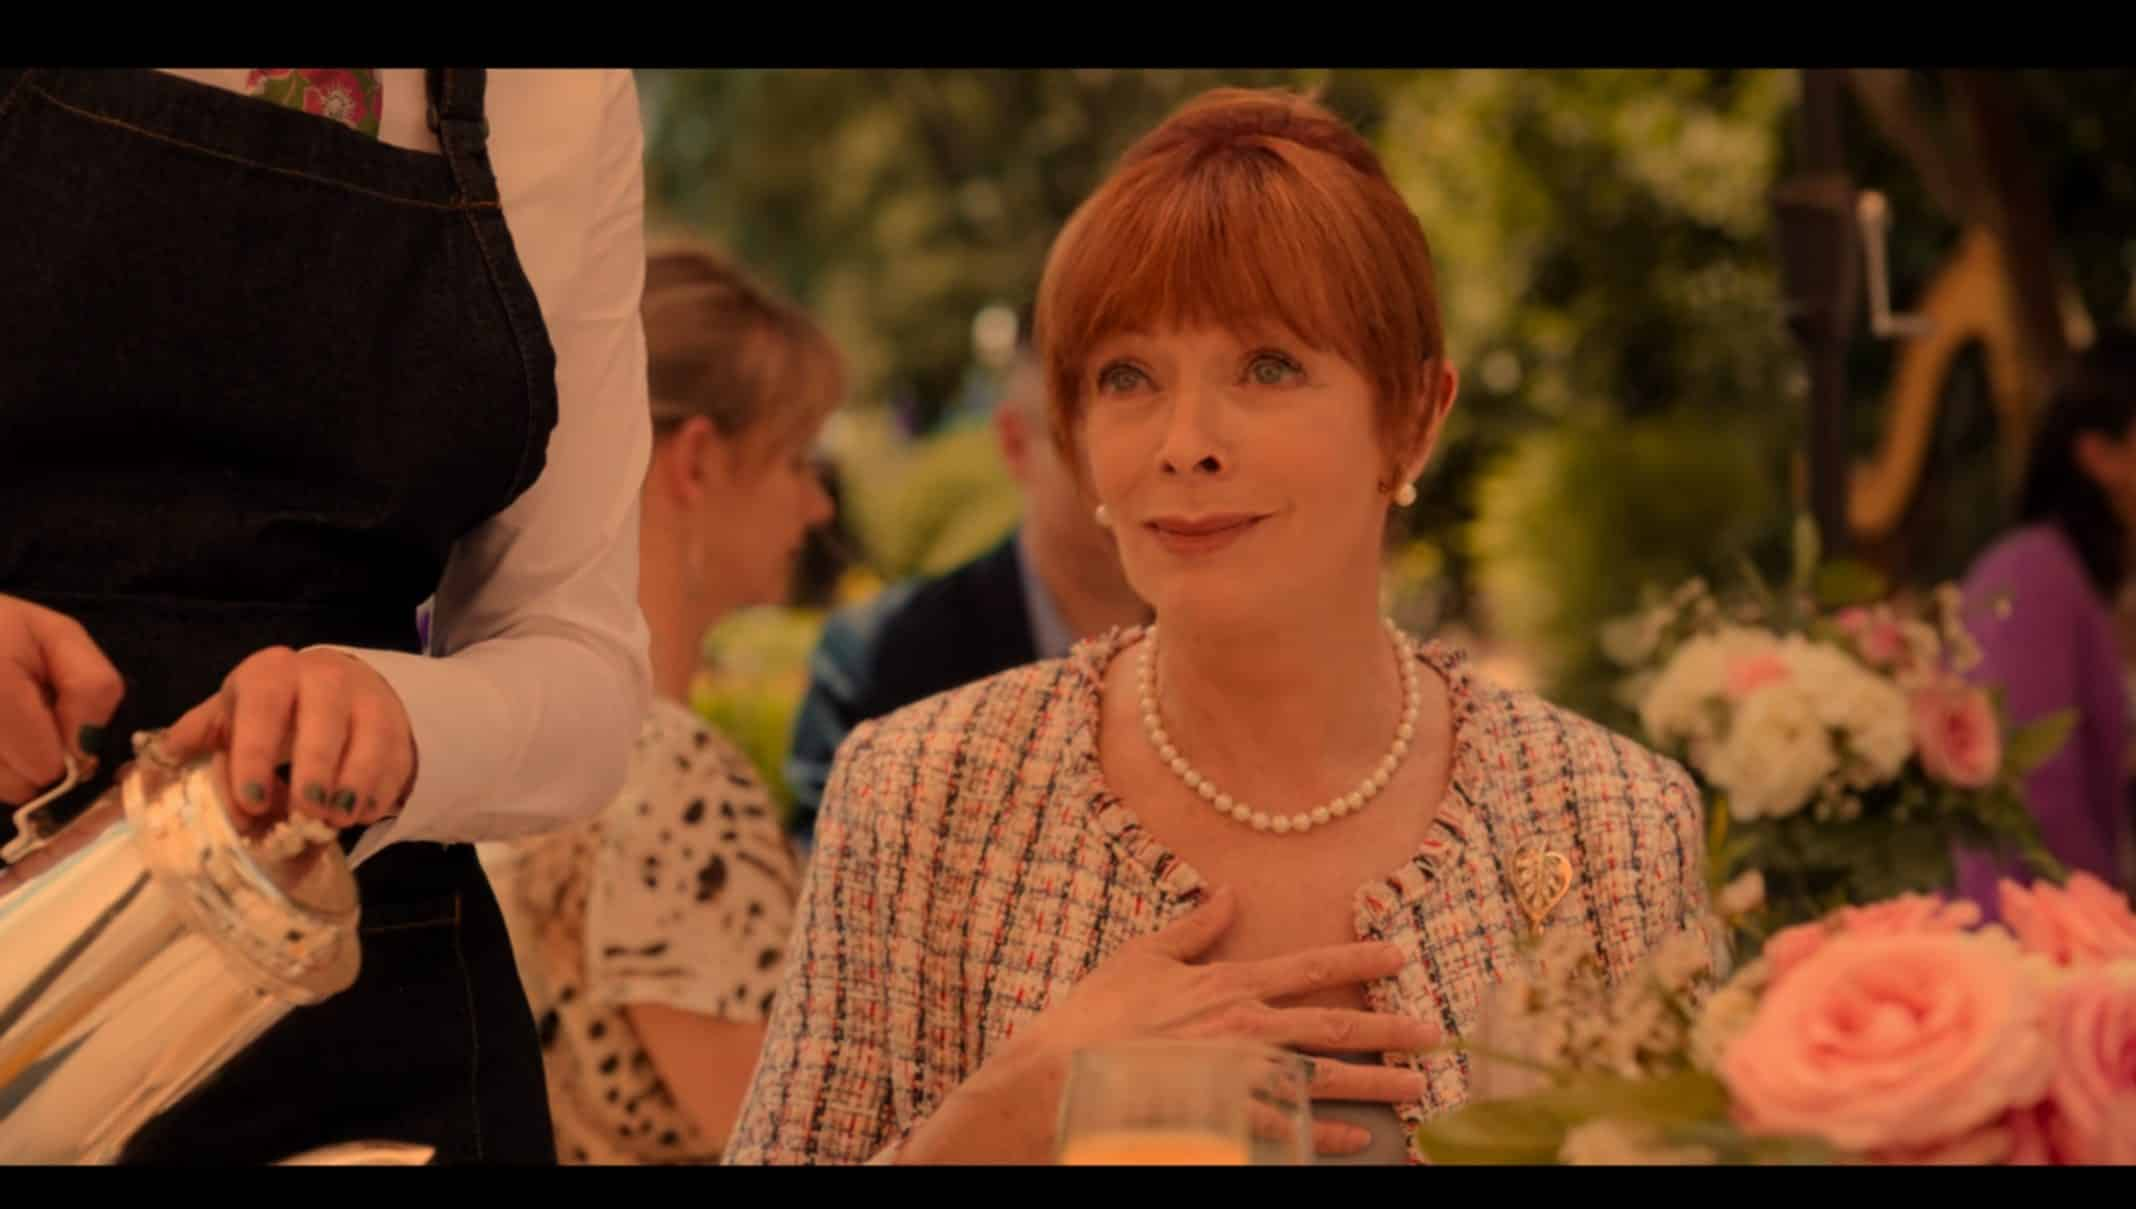 Elaine (Frances Fisher) questioning Jackson's intentions.